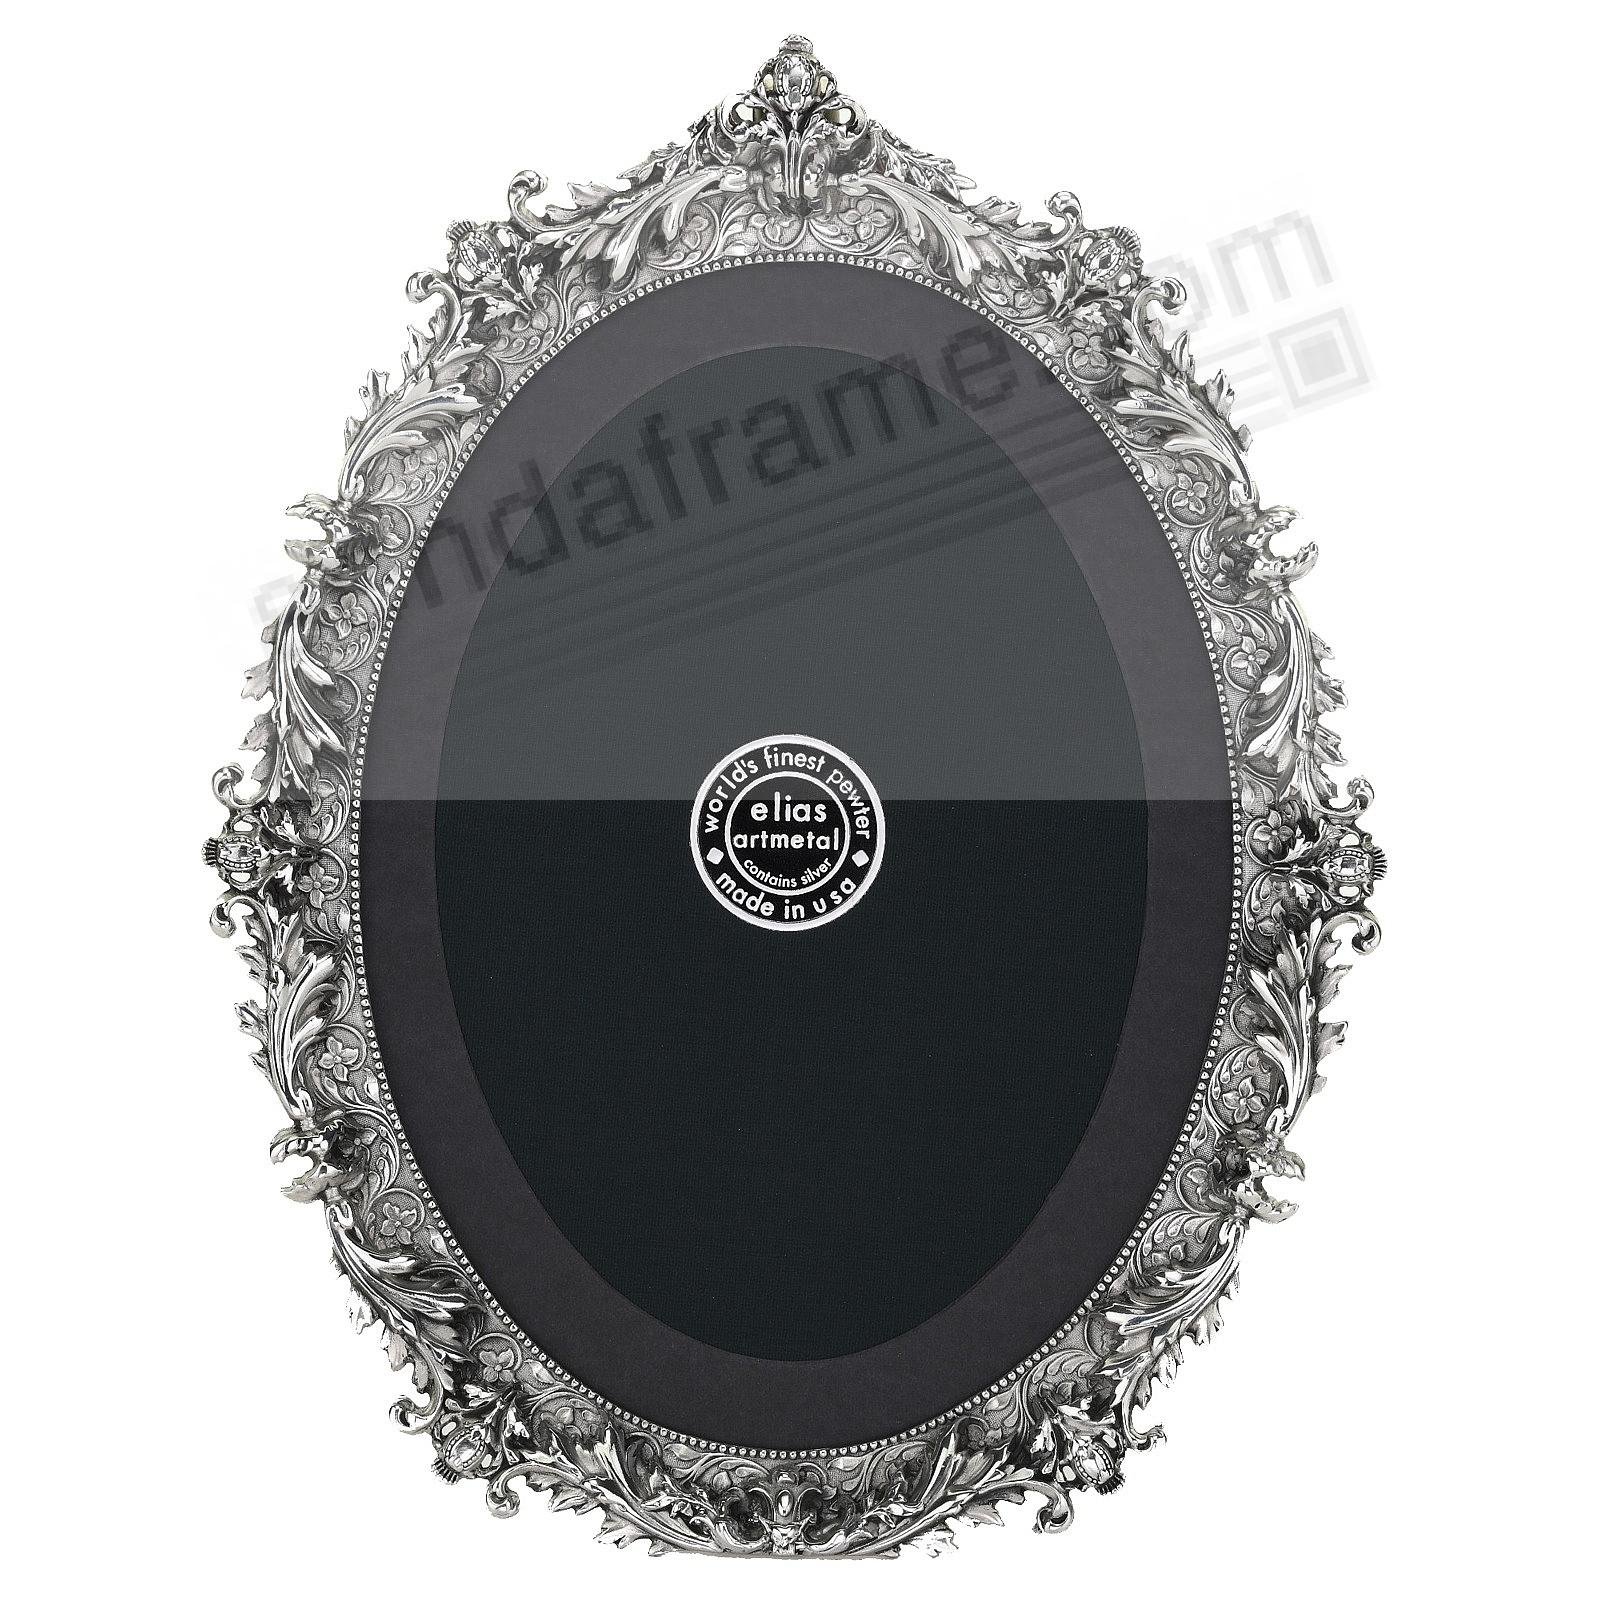 FRENCH BAROQUE OVAL Fine Silvered Pewter by Elias Artmetal®